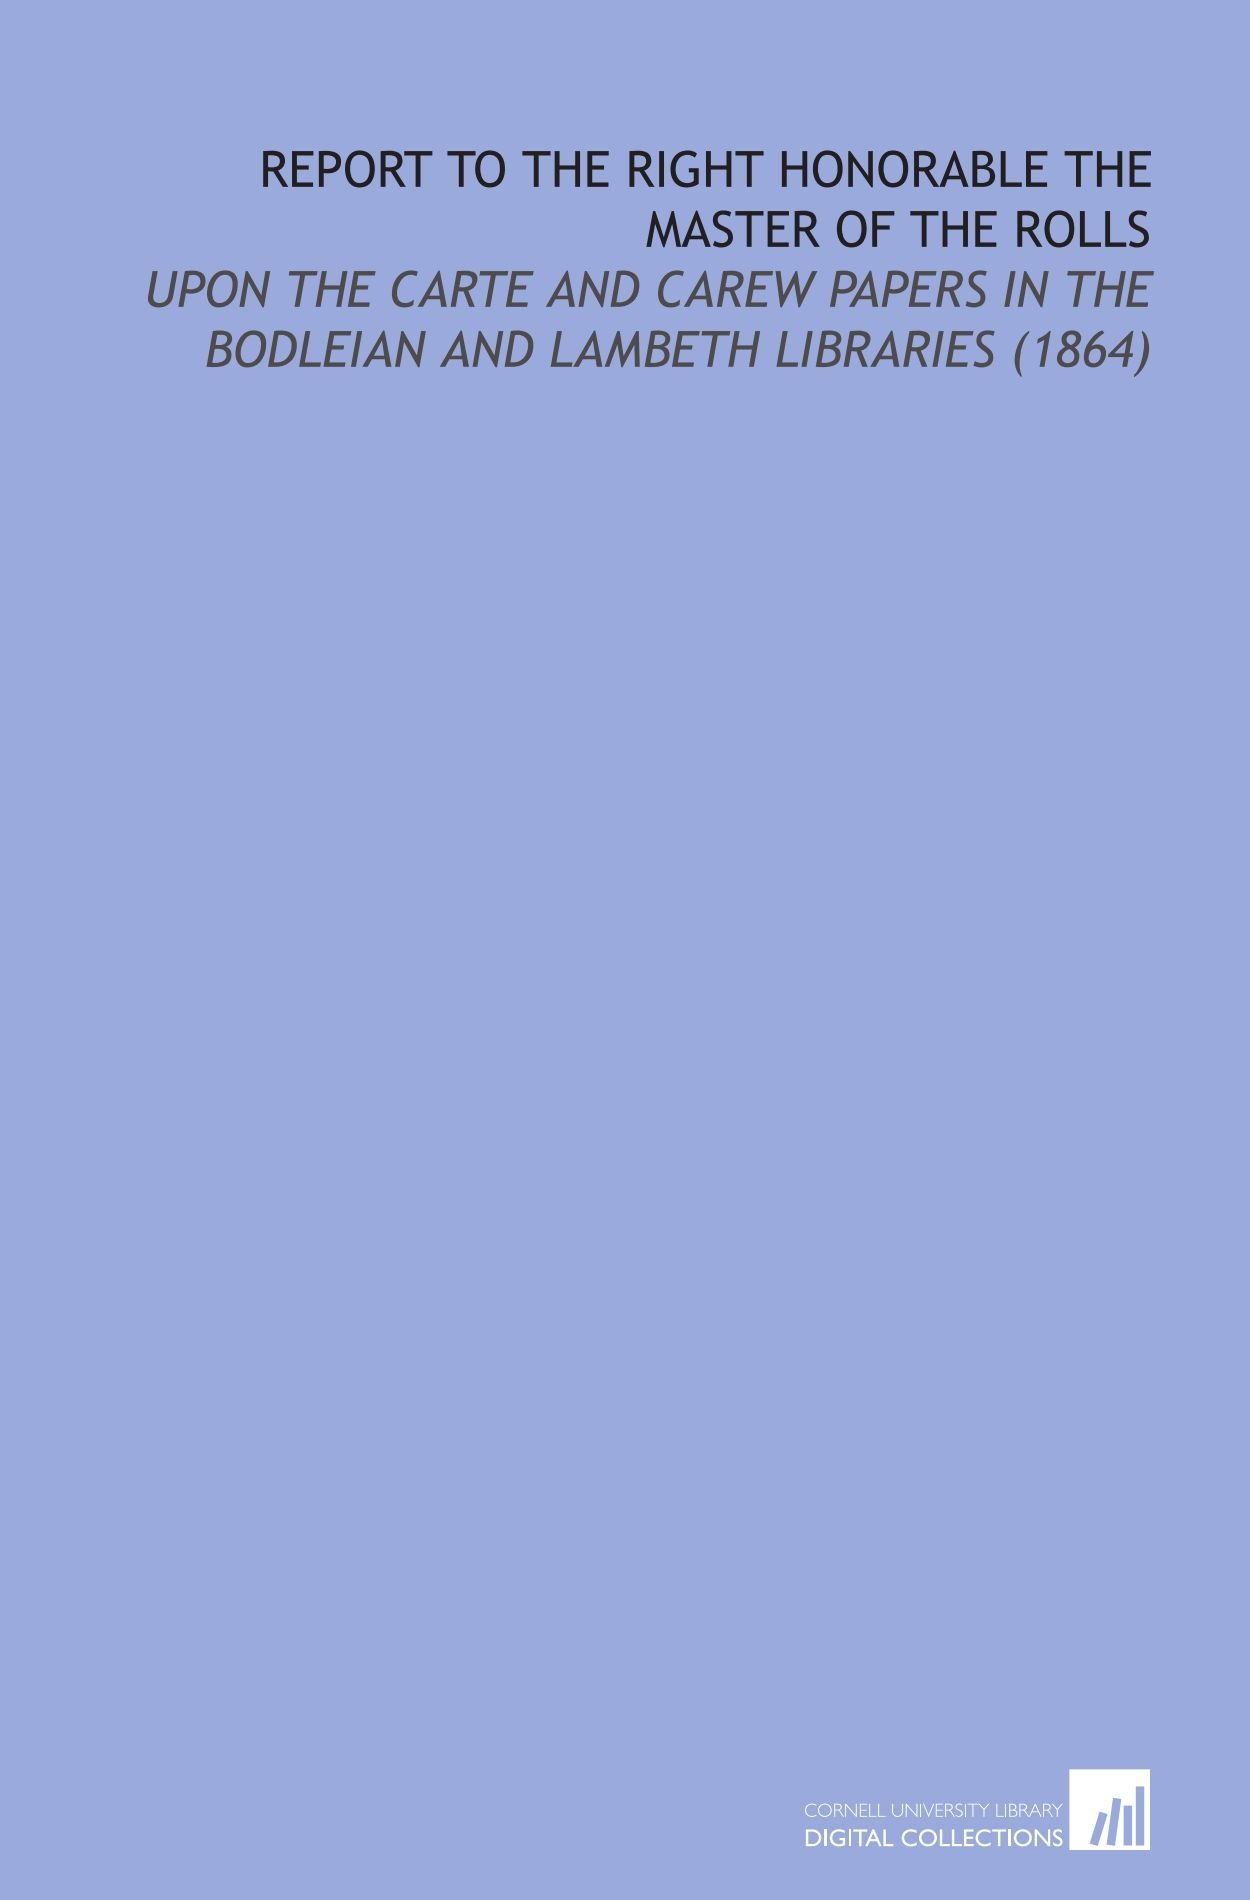 Report to the Right Honorable the Master of the Rolls: Upon the Carte and Carew Papers in the Bodleian and Lambeth Libraries (1864) PDF